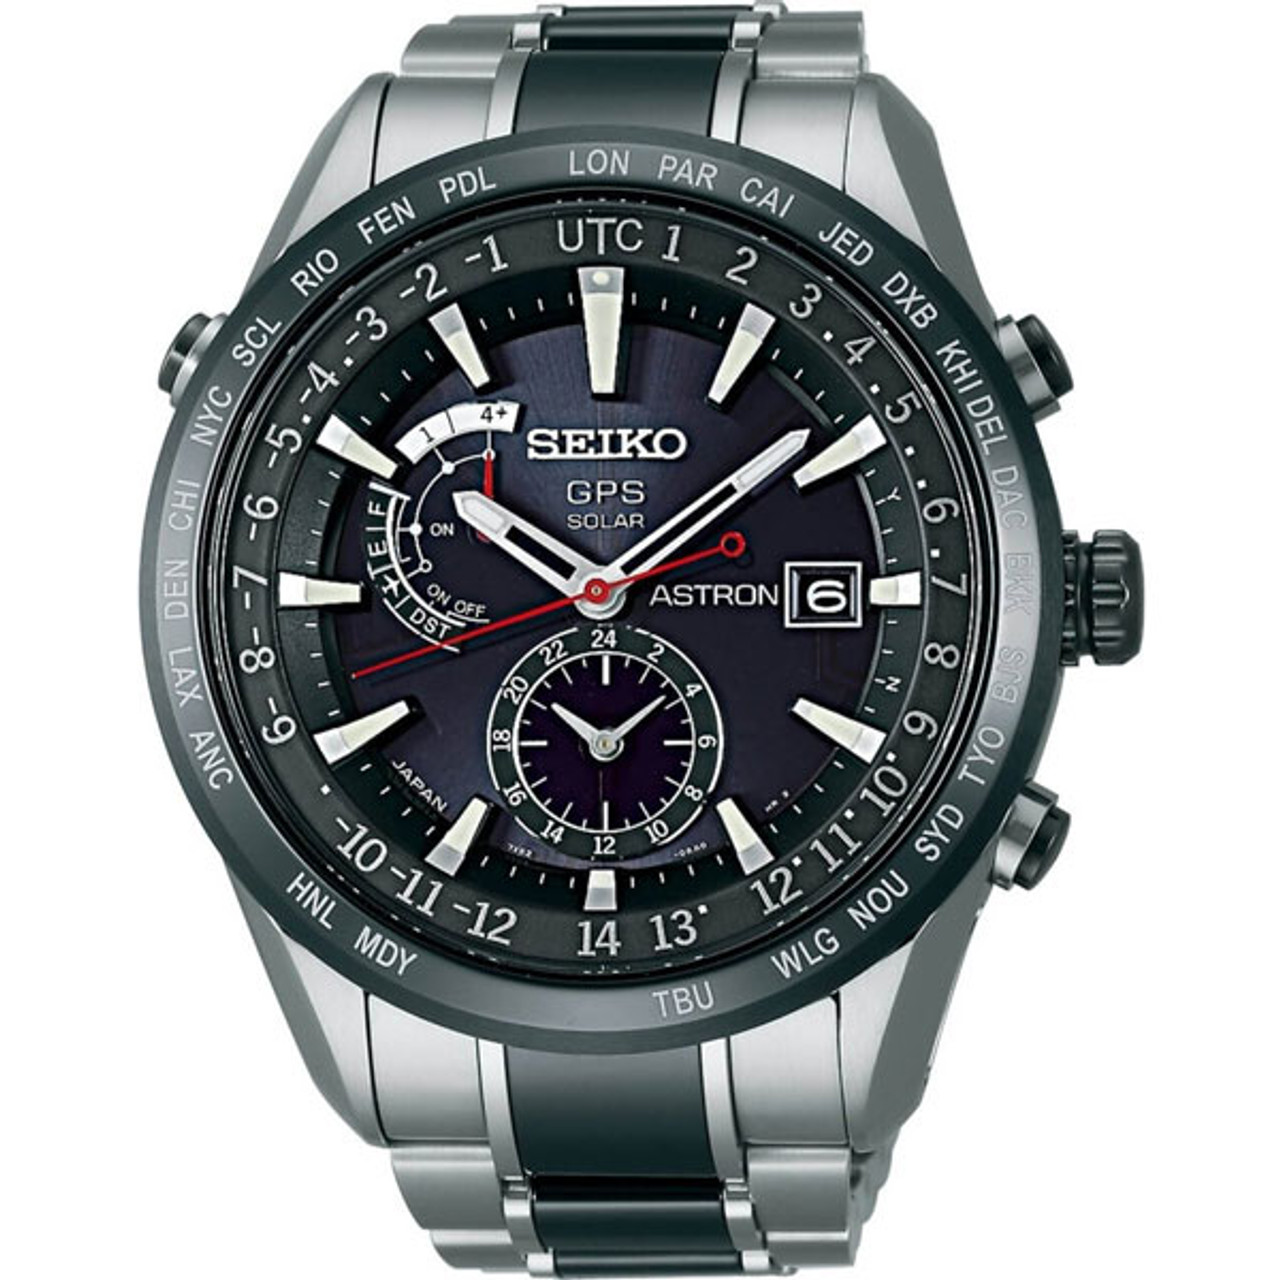 Seiko Astron SAST015G High Intensity Titanium (SAST015)